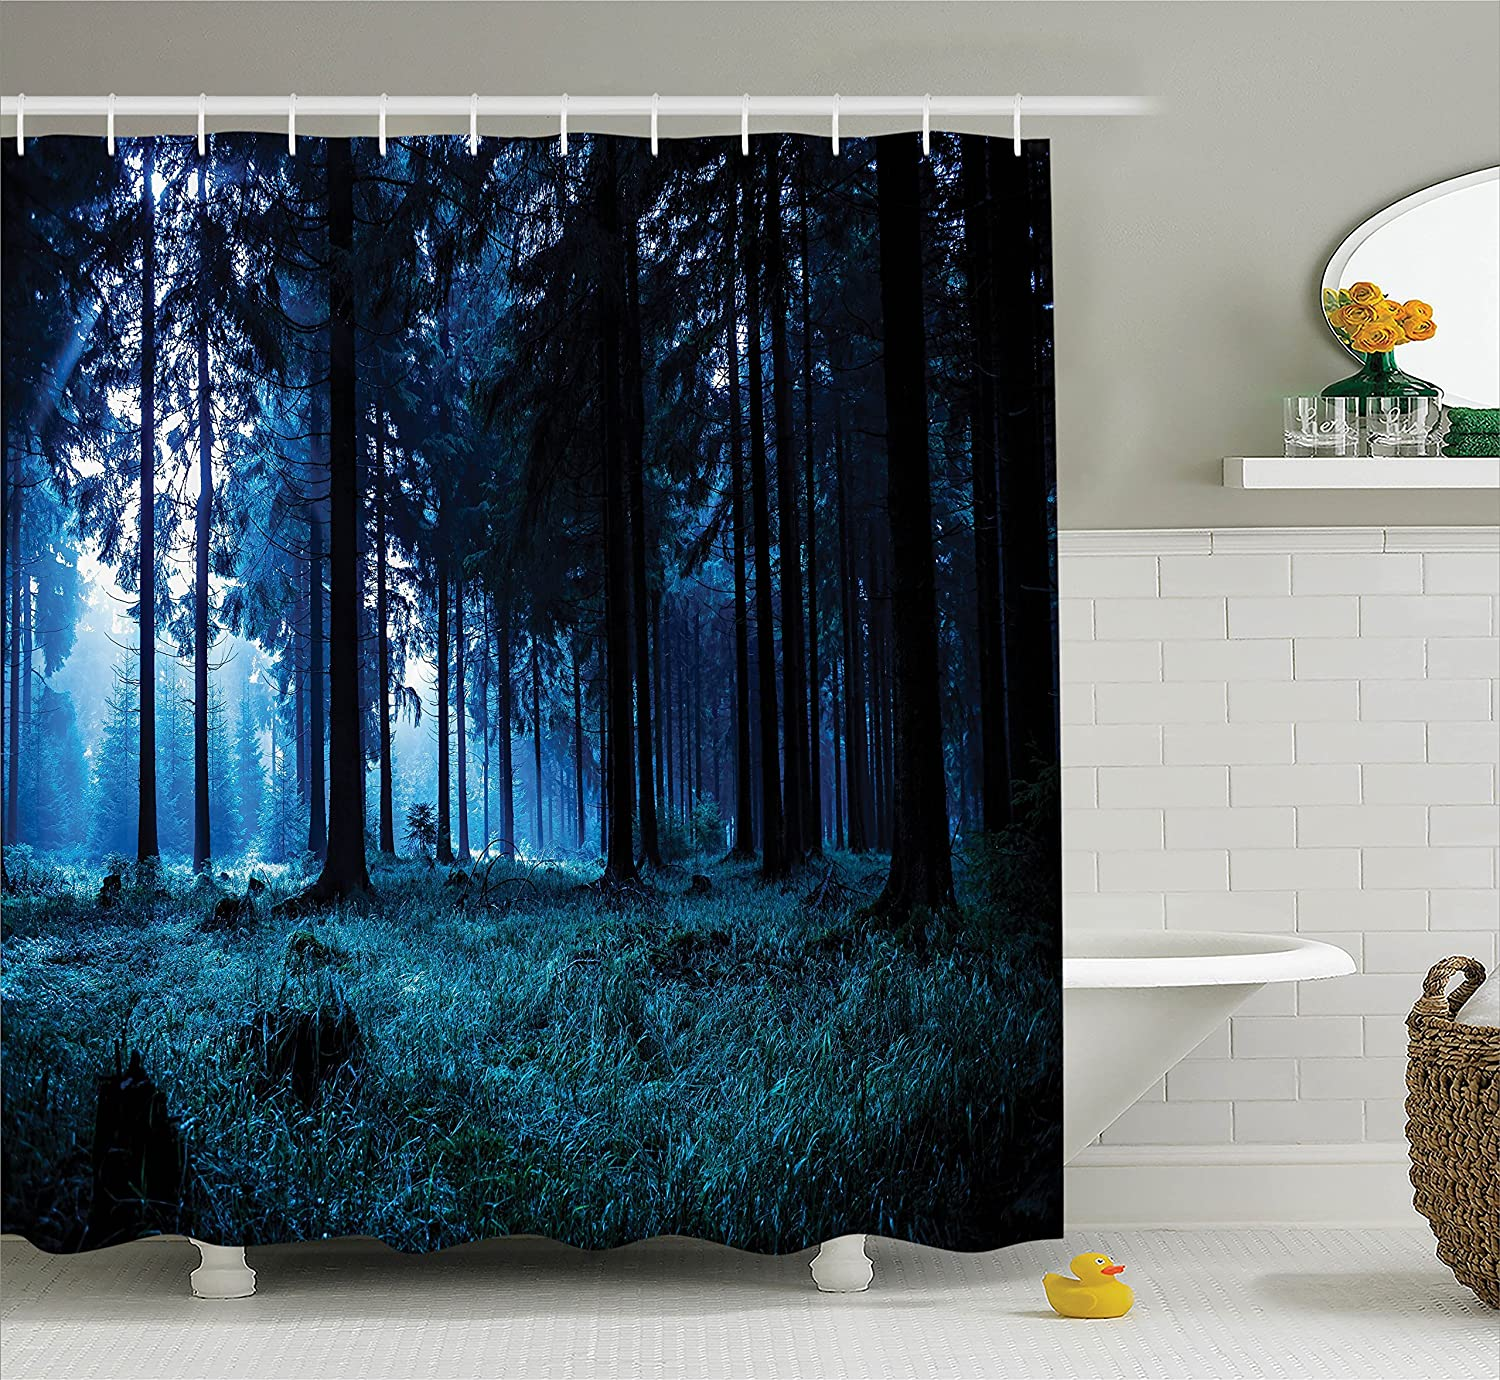 Night Scene of Autumn Forest in Thuringia Germany Foggy Pine Trees with Greenery Image Navy Blue Ambesonne Room Decorations Collection Polyester Fabric Bathroom Shower Curtain Set with Hooks